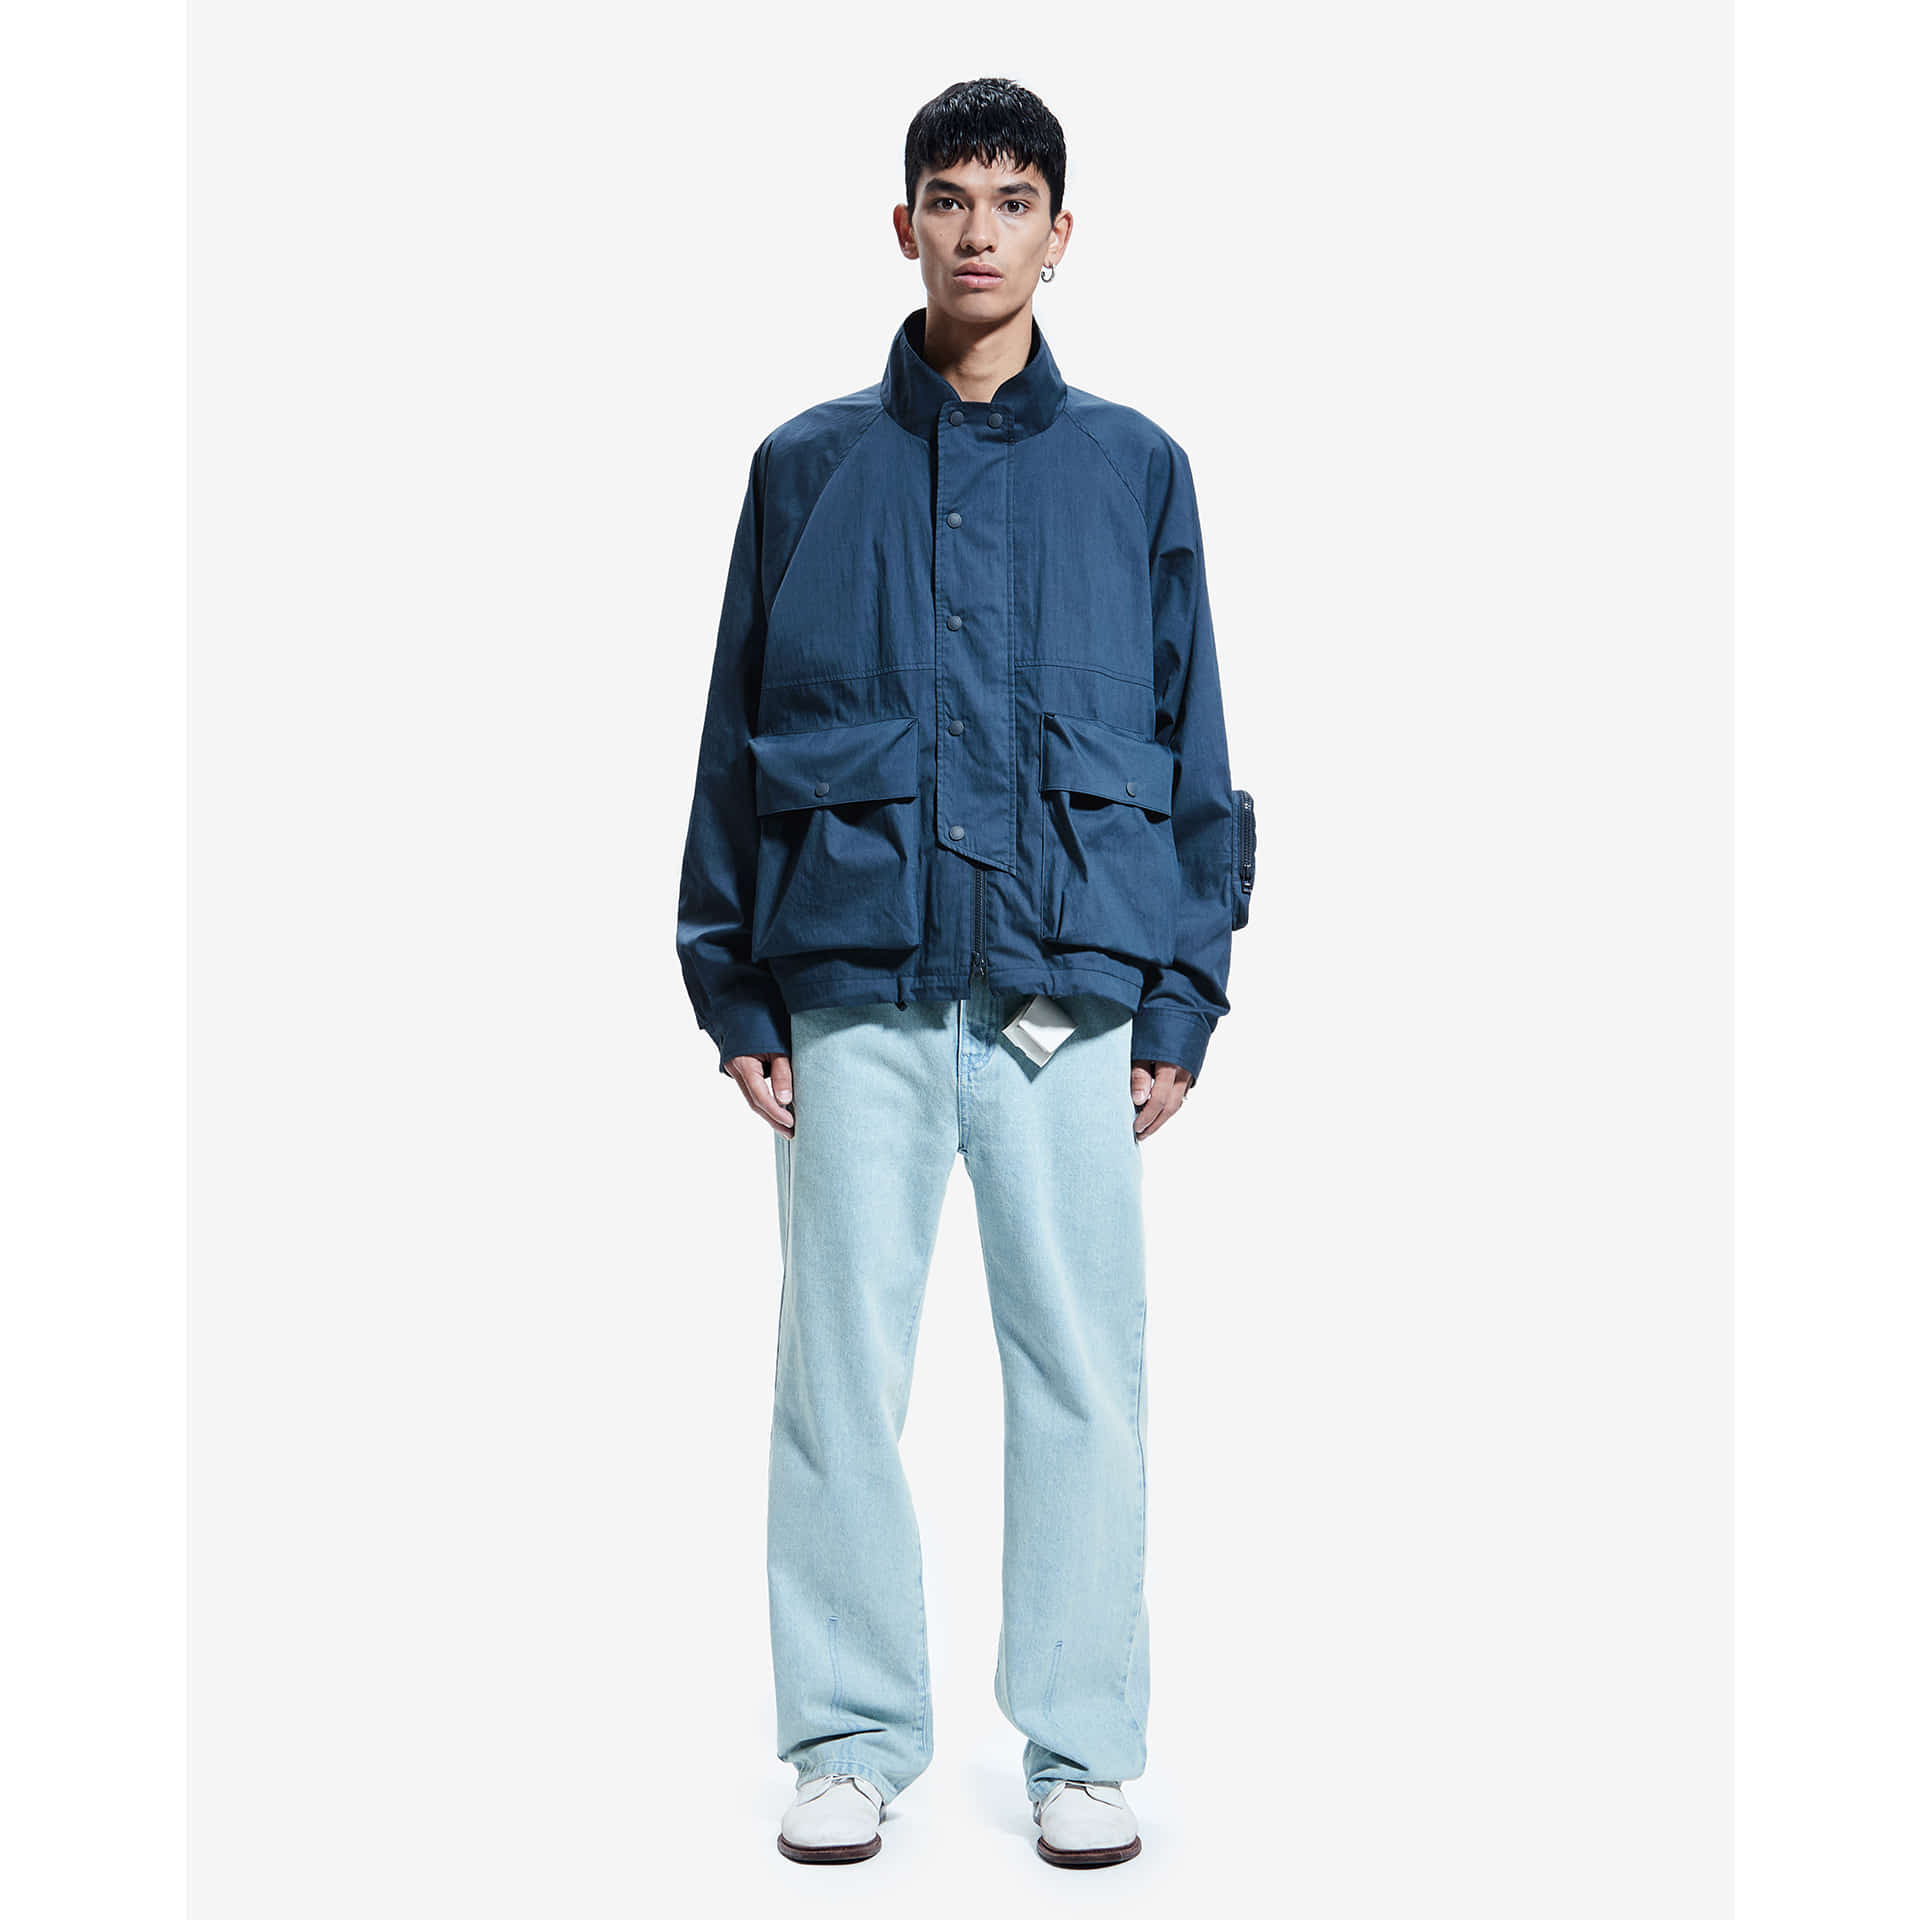 layer-COMFORT MOUNTAIN JACKET prussian blue♡韓國男裝外套